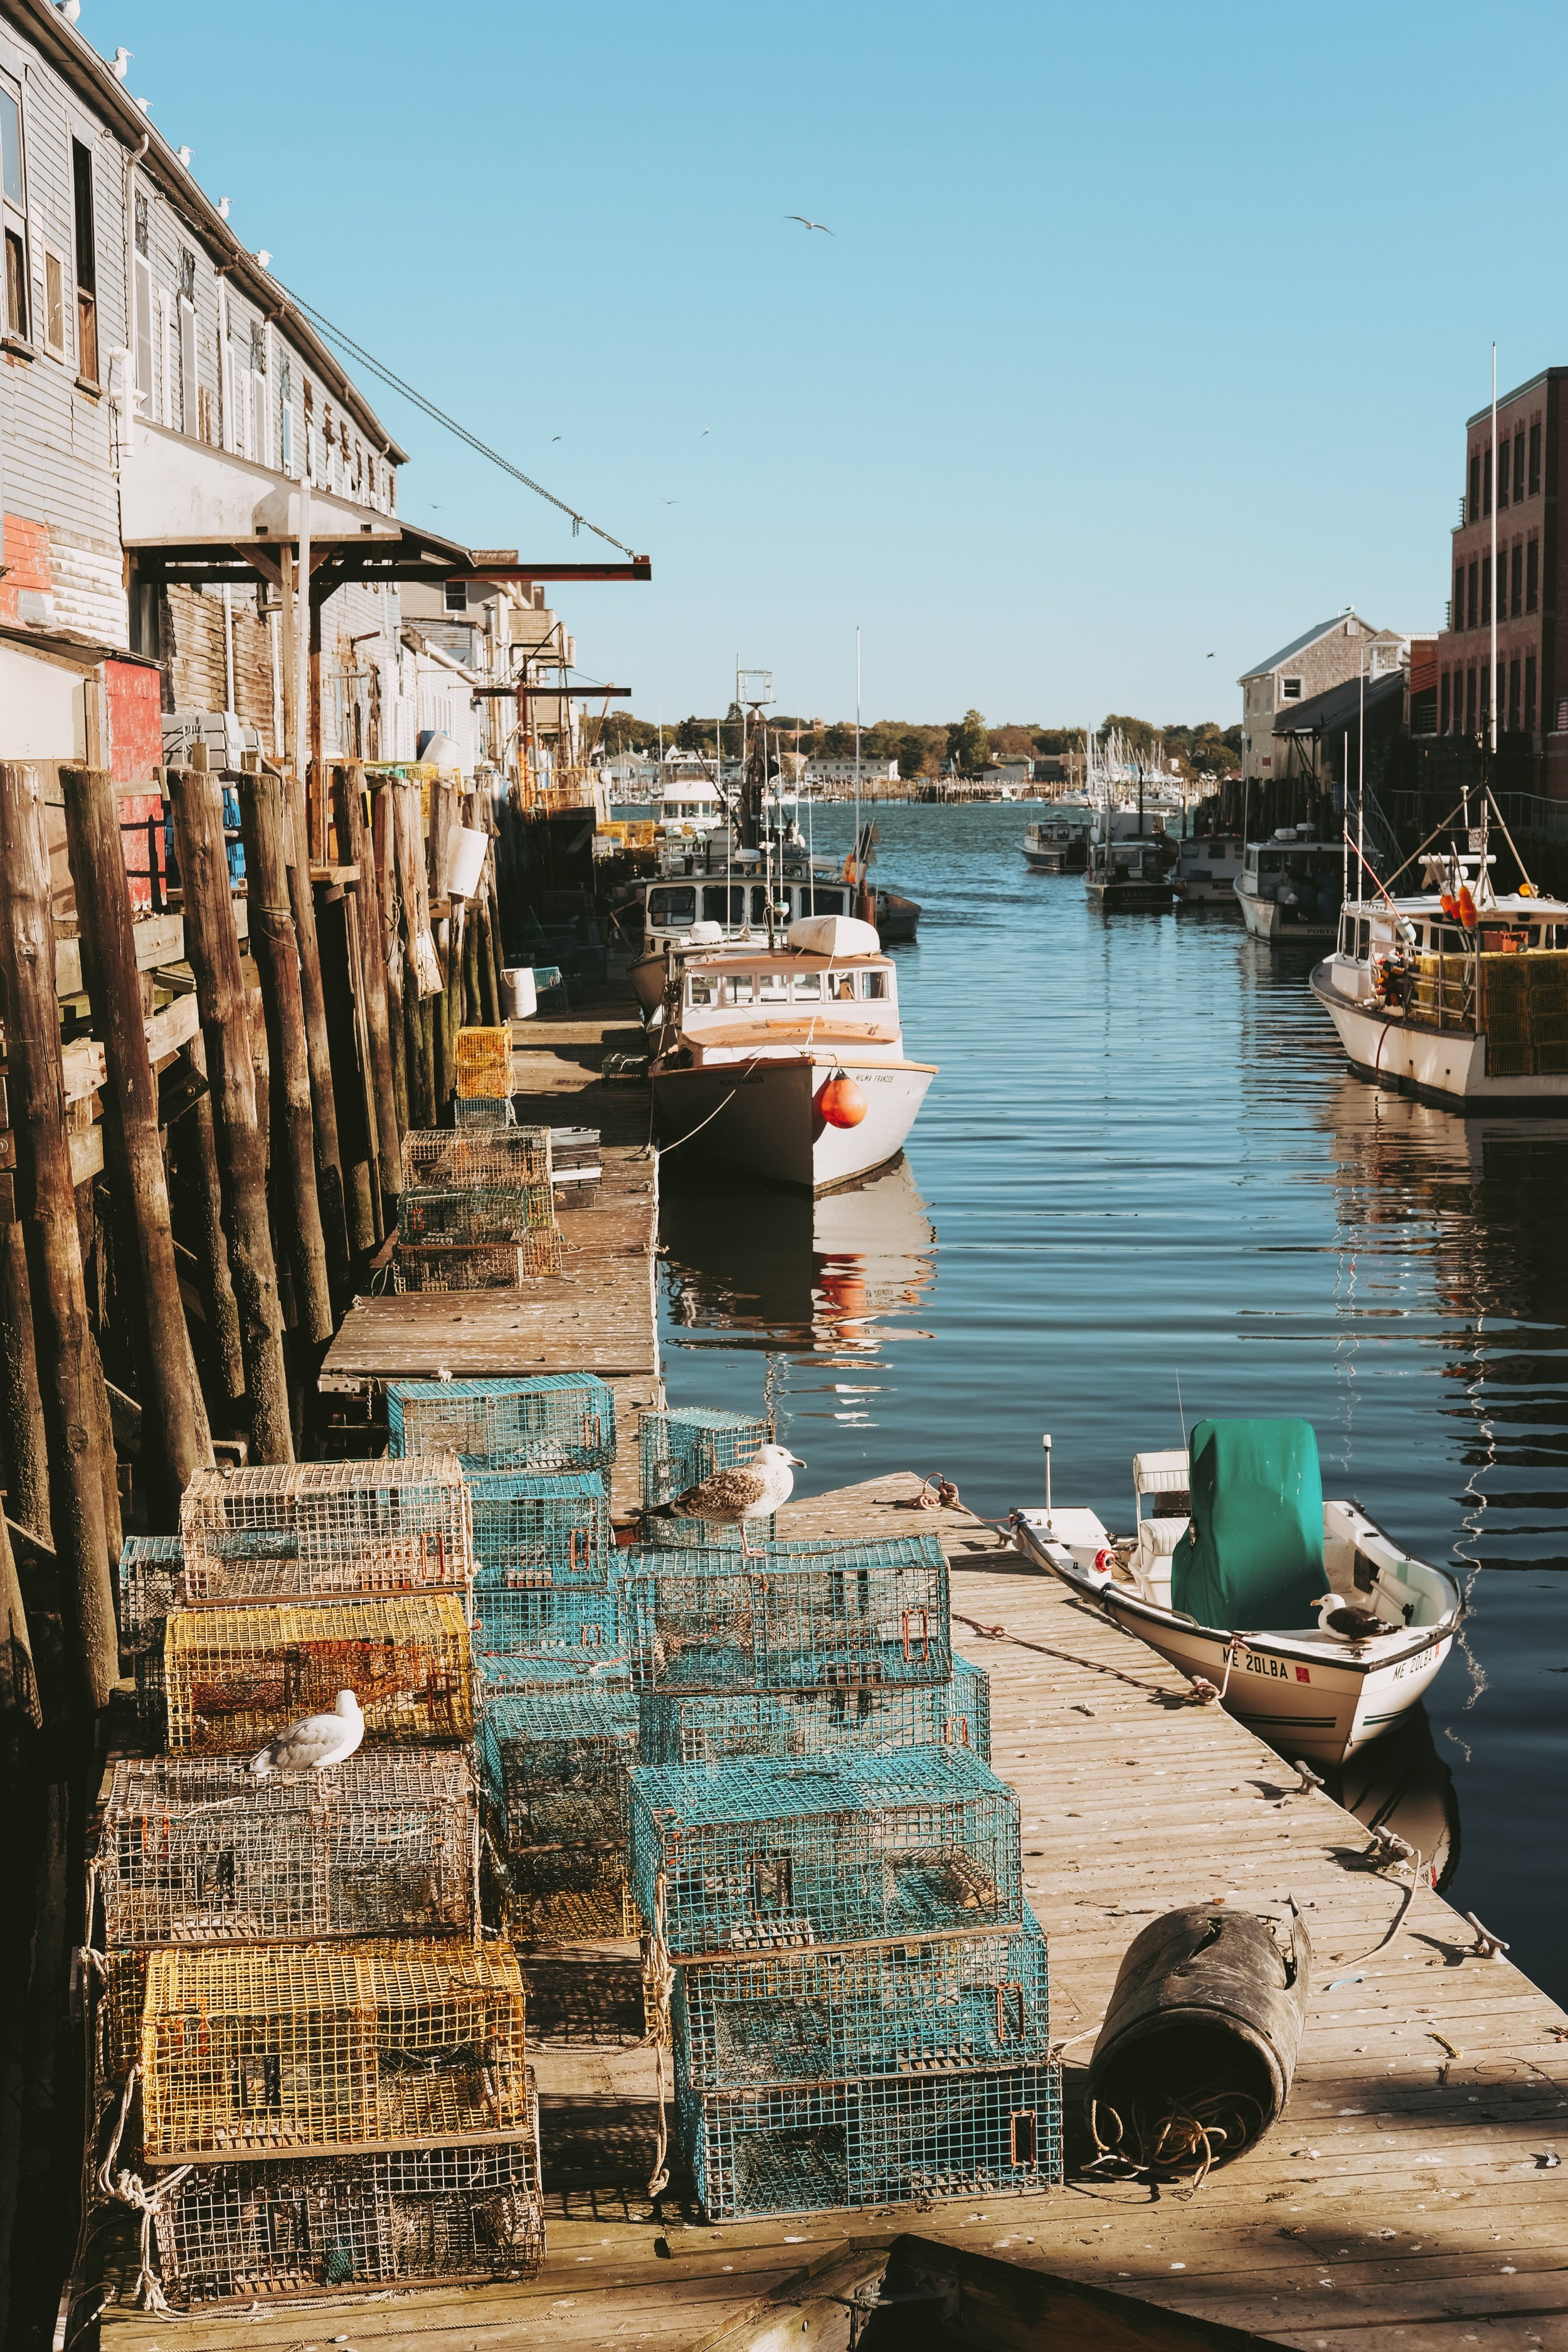 Places to stay in midcoast Maine for you and your wedding guests | Photo by  Matt McNulty  on  Unsplash